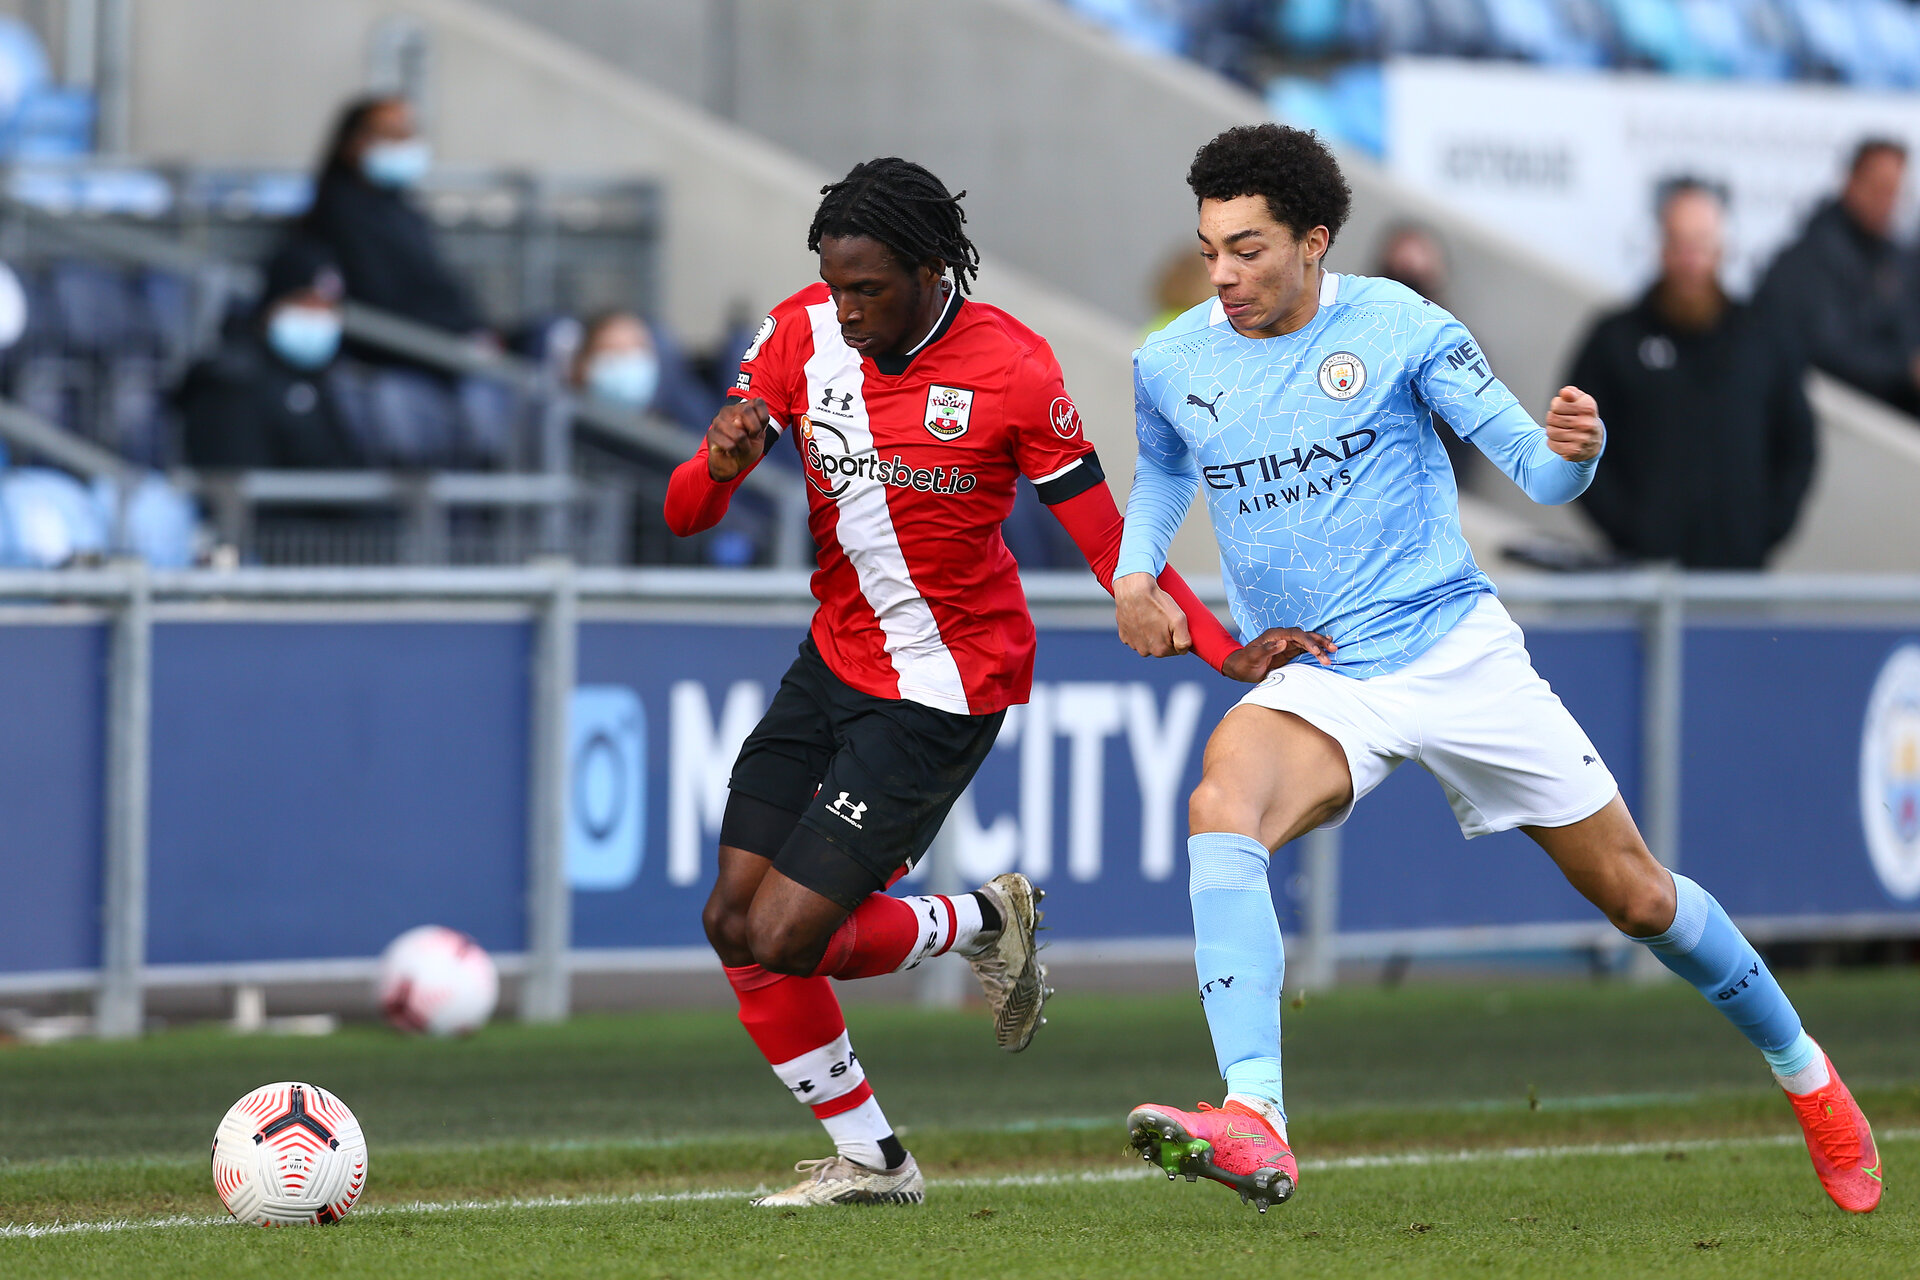 MANCHESTER, ENGLAND - MARCH 15: Zuriel Otseh-Taiwo(L) of Southampton during the Premier League 2 match between Manchester City and Southampton B Team at the City Football Academy on March 15, 2021 in Southampton, England.  (Photo by Isabelle Field/Southampton FC via Getty Images)